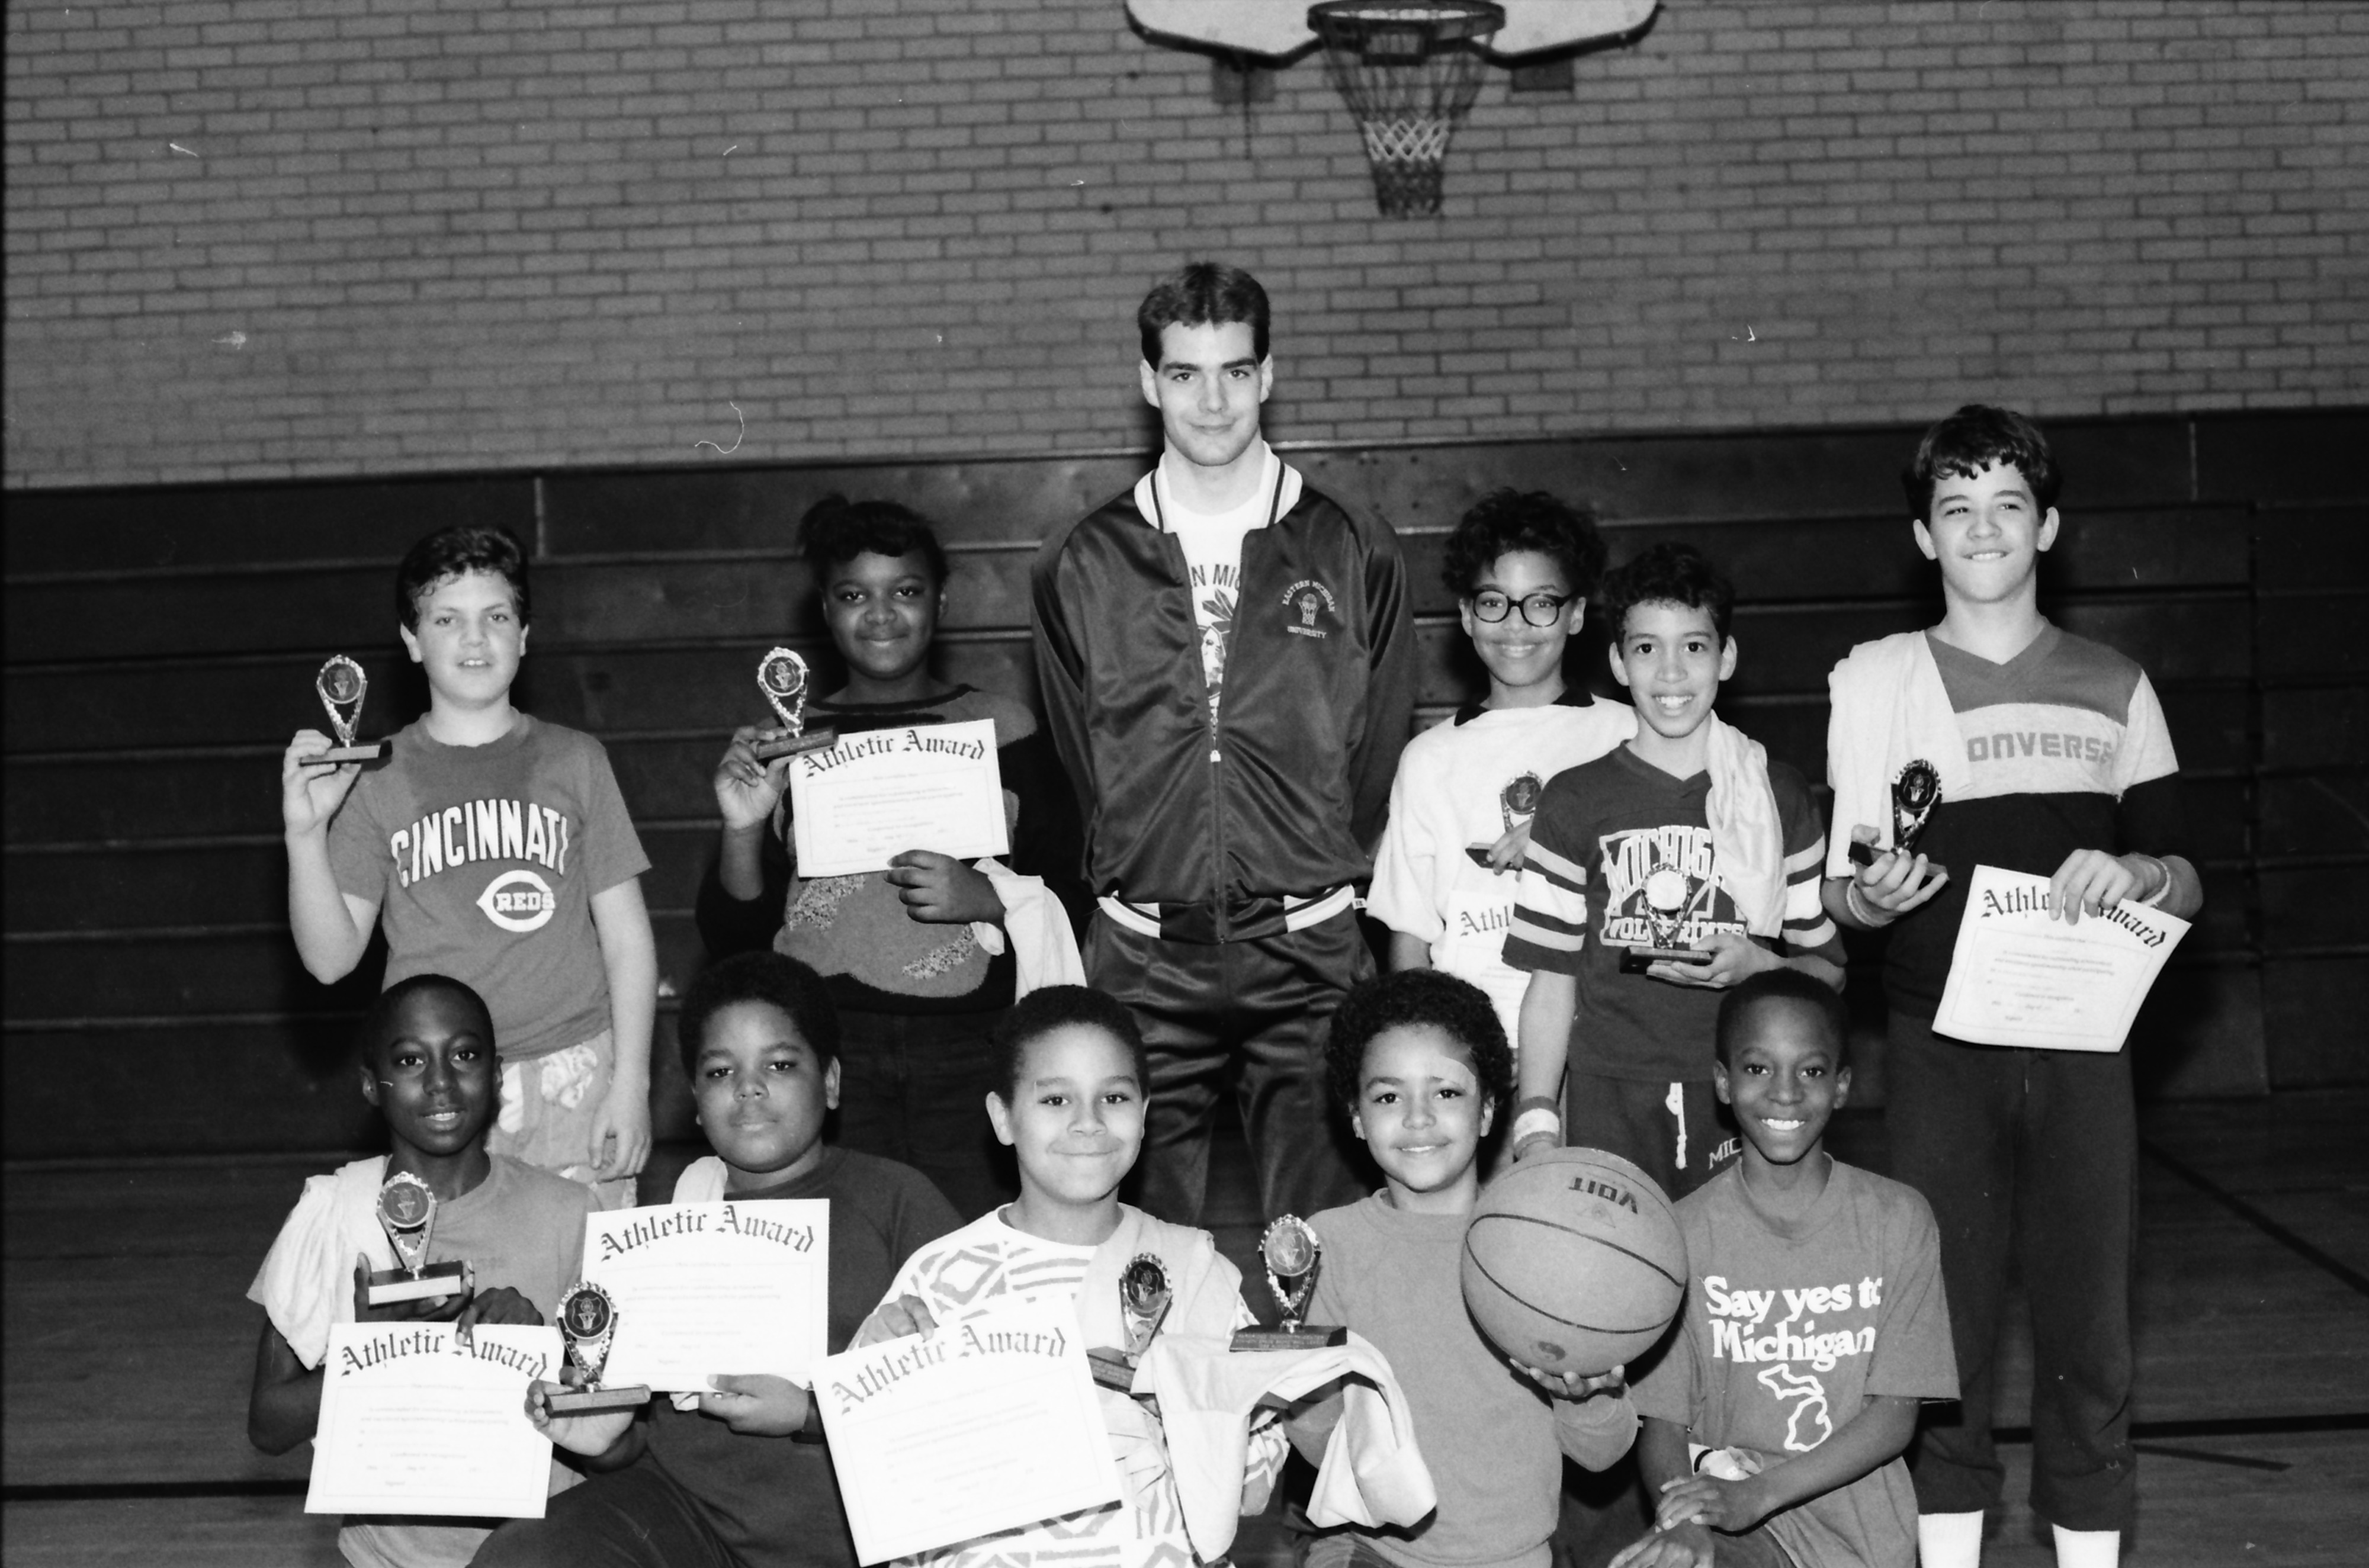 Parkridge Basketball League Awards, March 1988 image